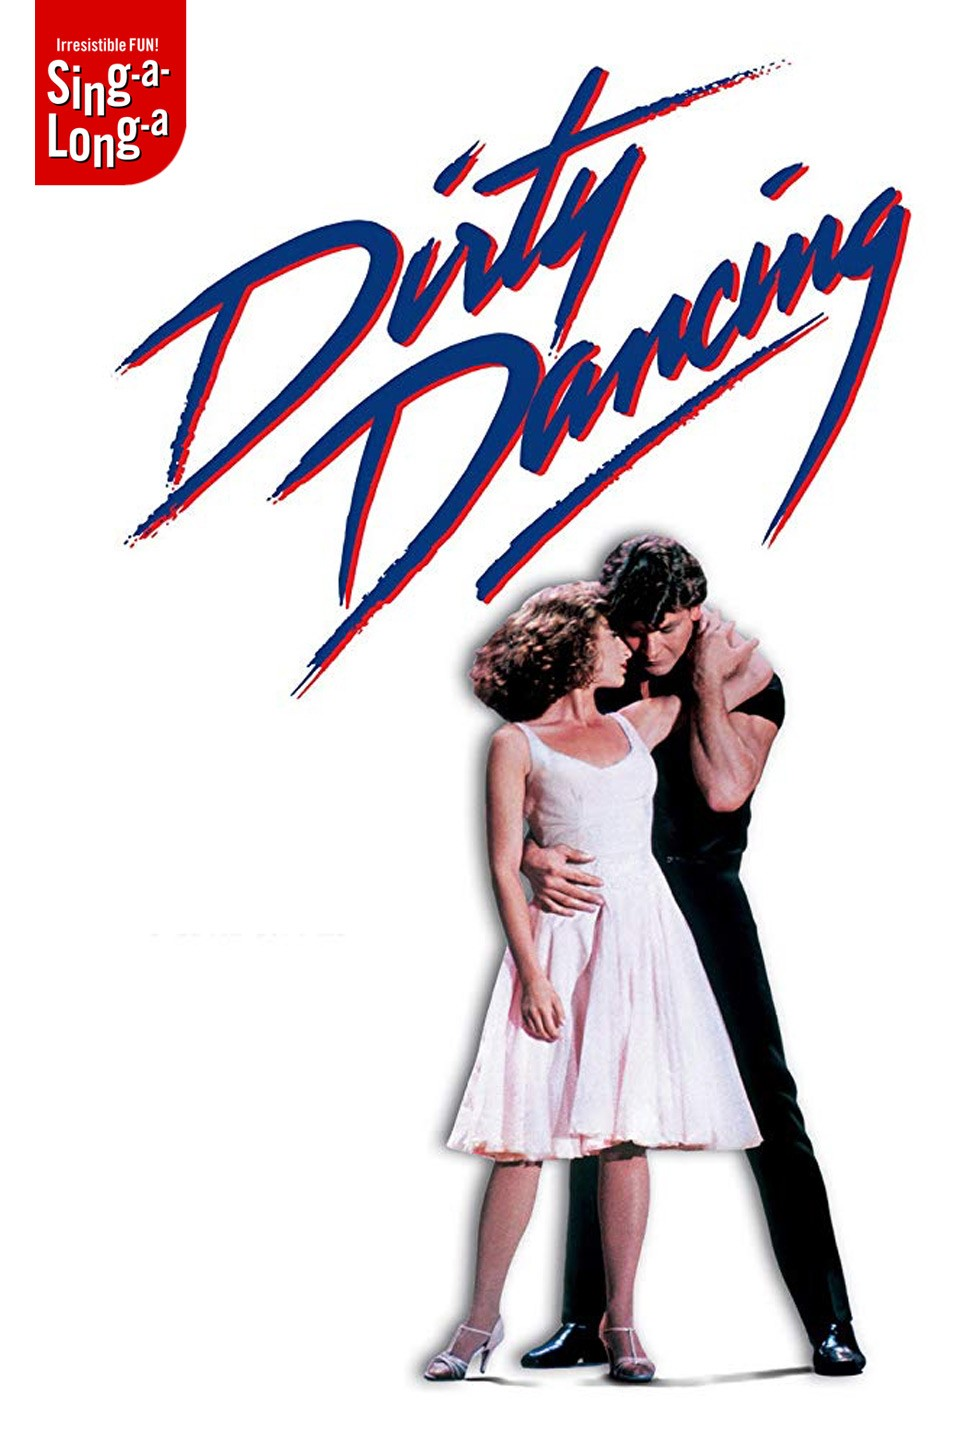 Sing-A-Long-A DIRTY DANCING